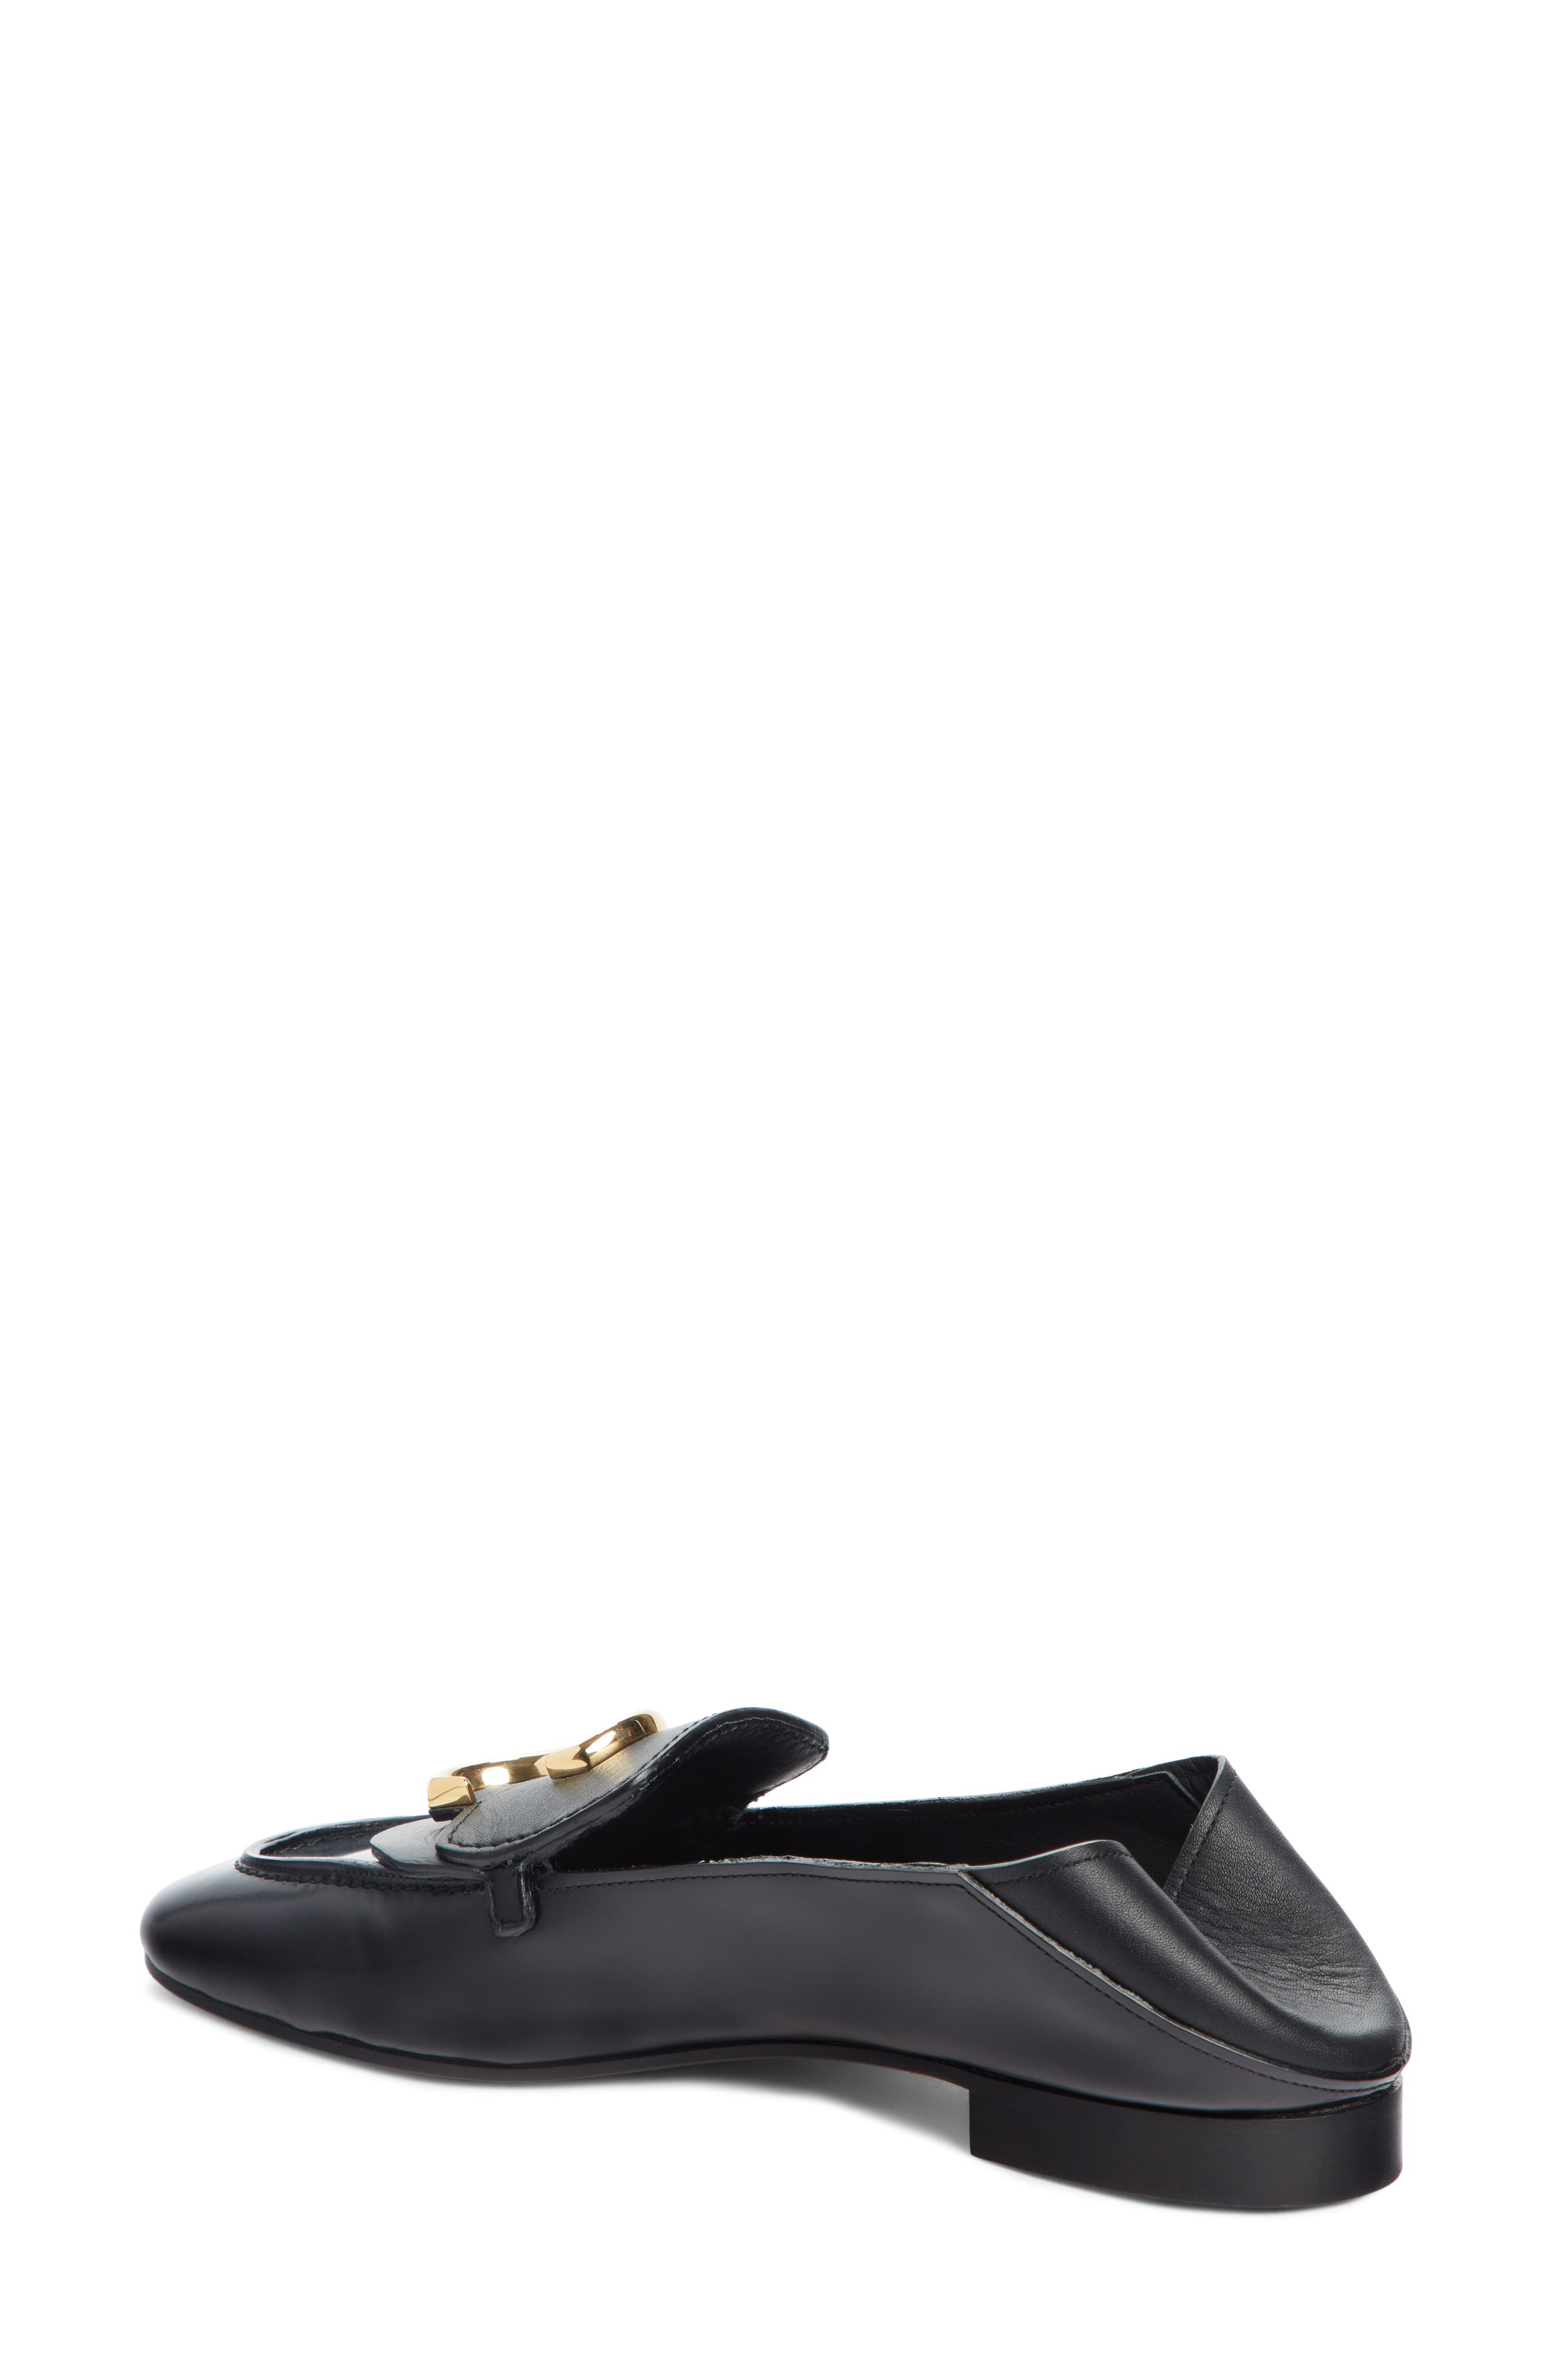 Story Convertible Loafer,                             Alternate thumbnail 2, color,                             BLACK LEATHER